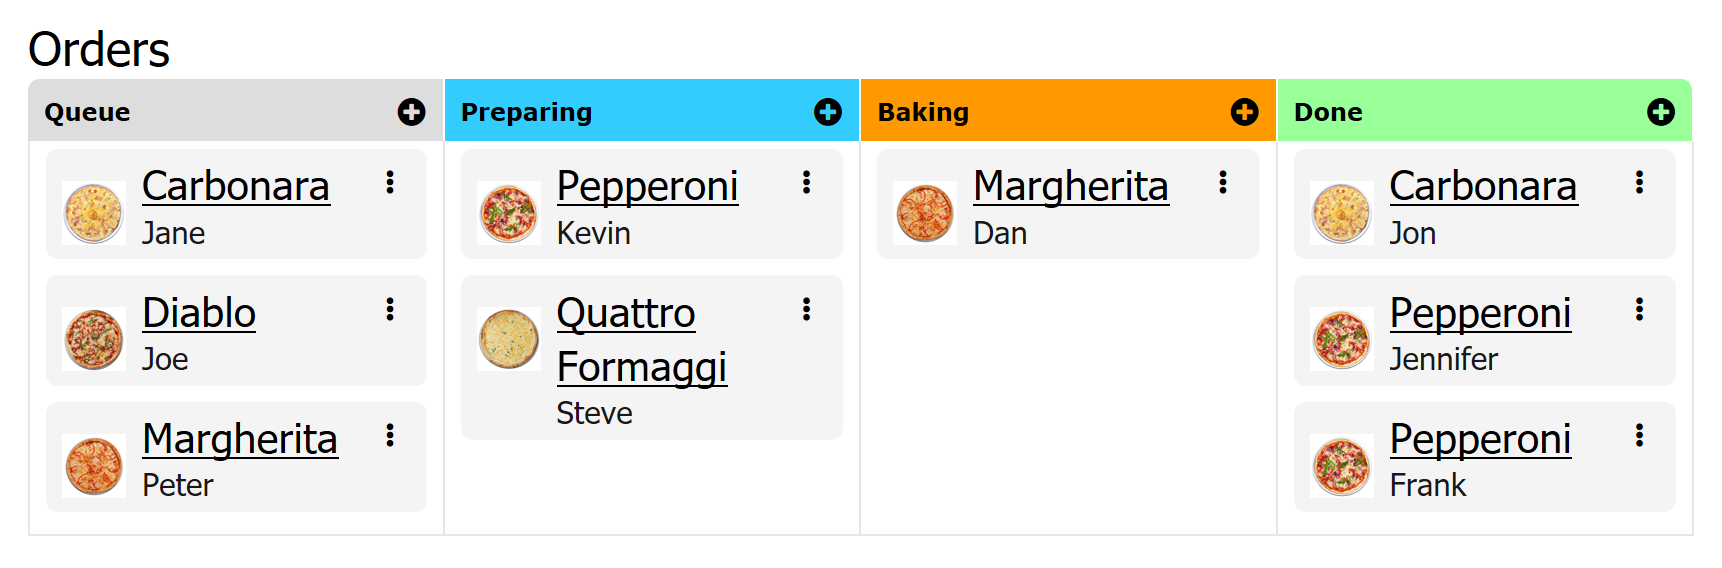 Kanban board for pizza makers